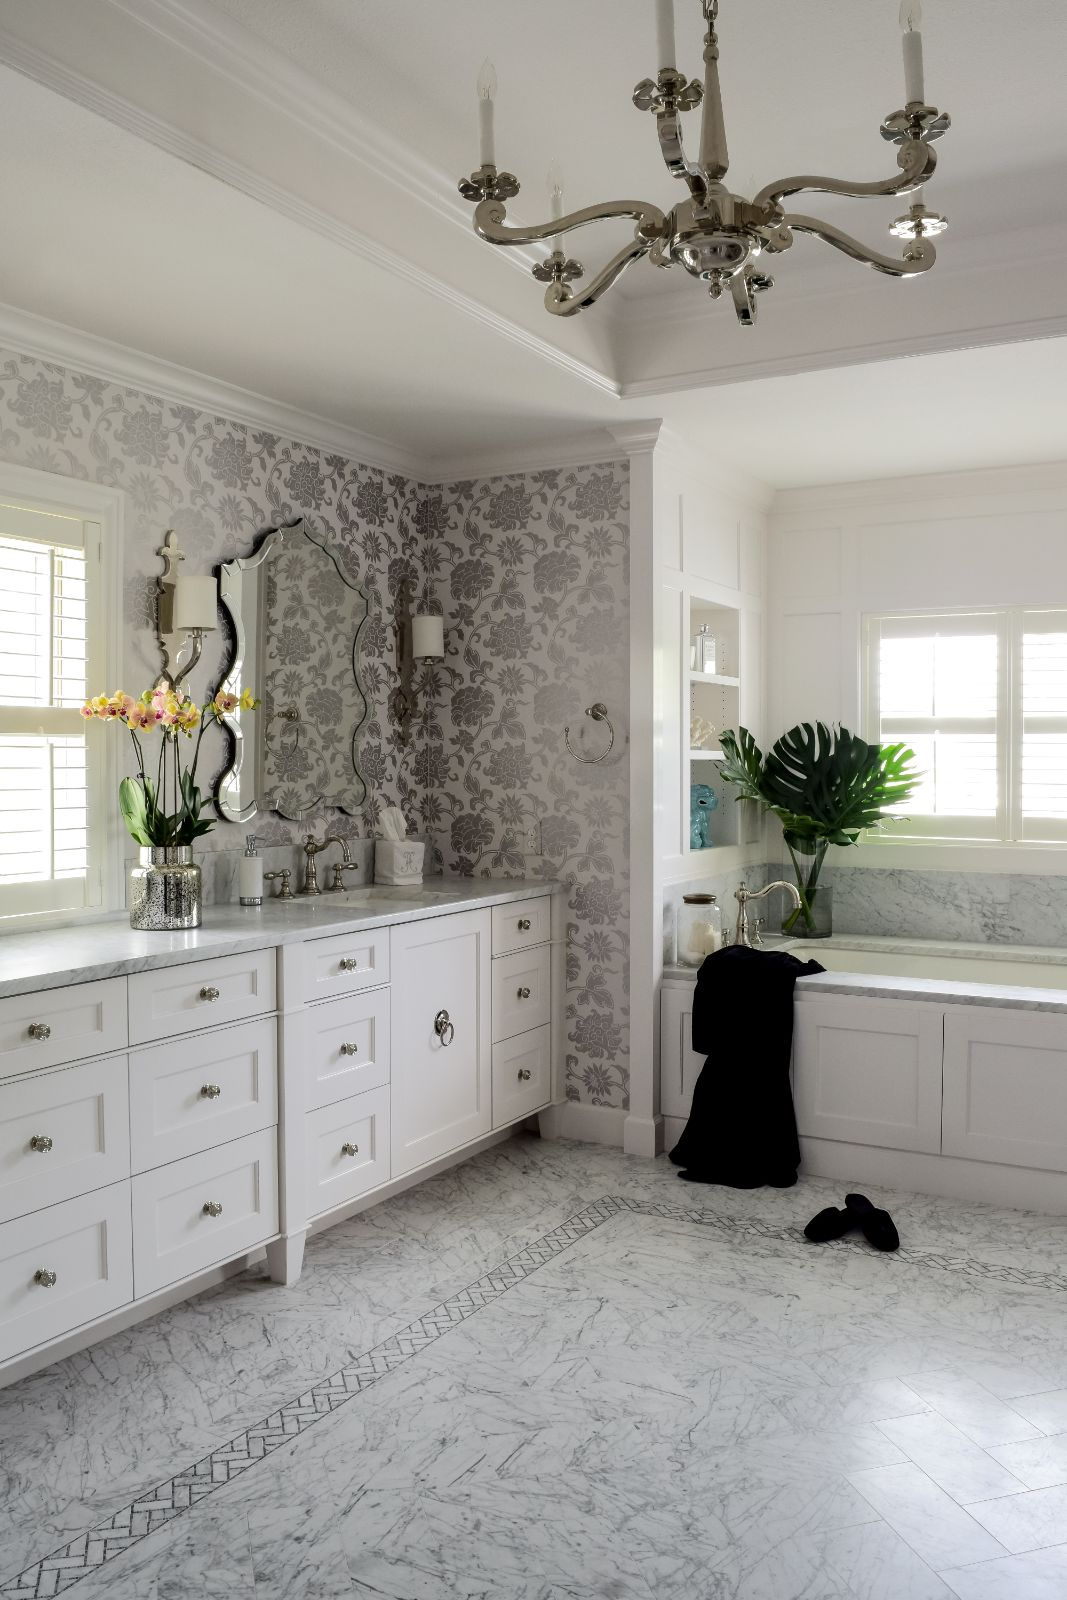 Hagee Bathroom Renovation with floral wall paper, double vanity on marble counter, and bathtub